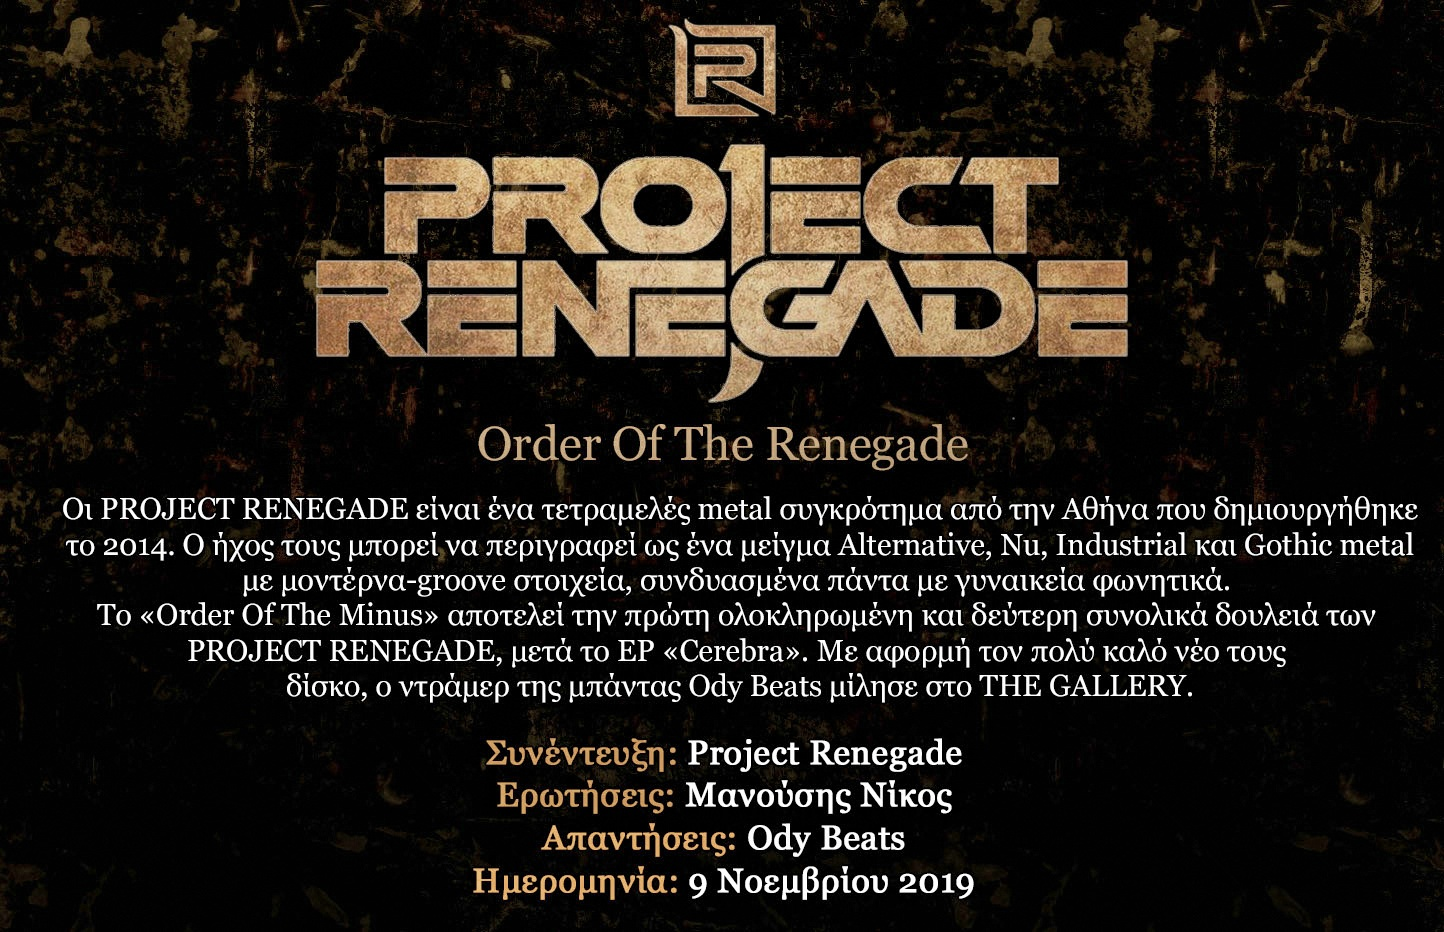 Project Renegade – Order Of The Renegade